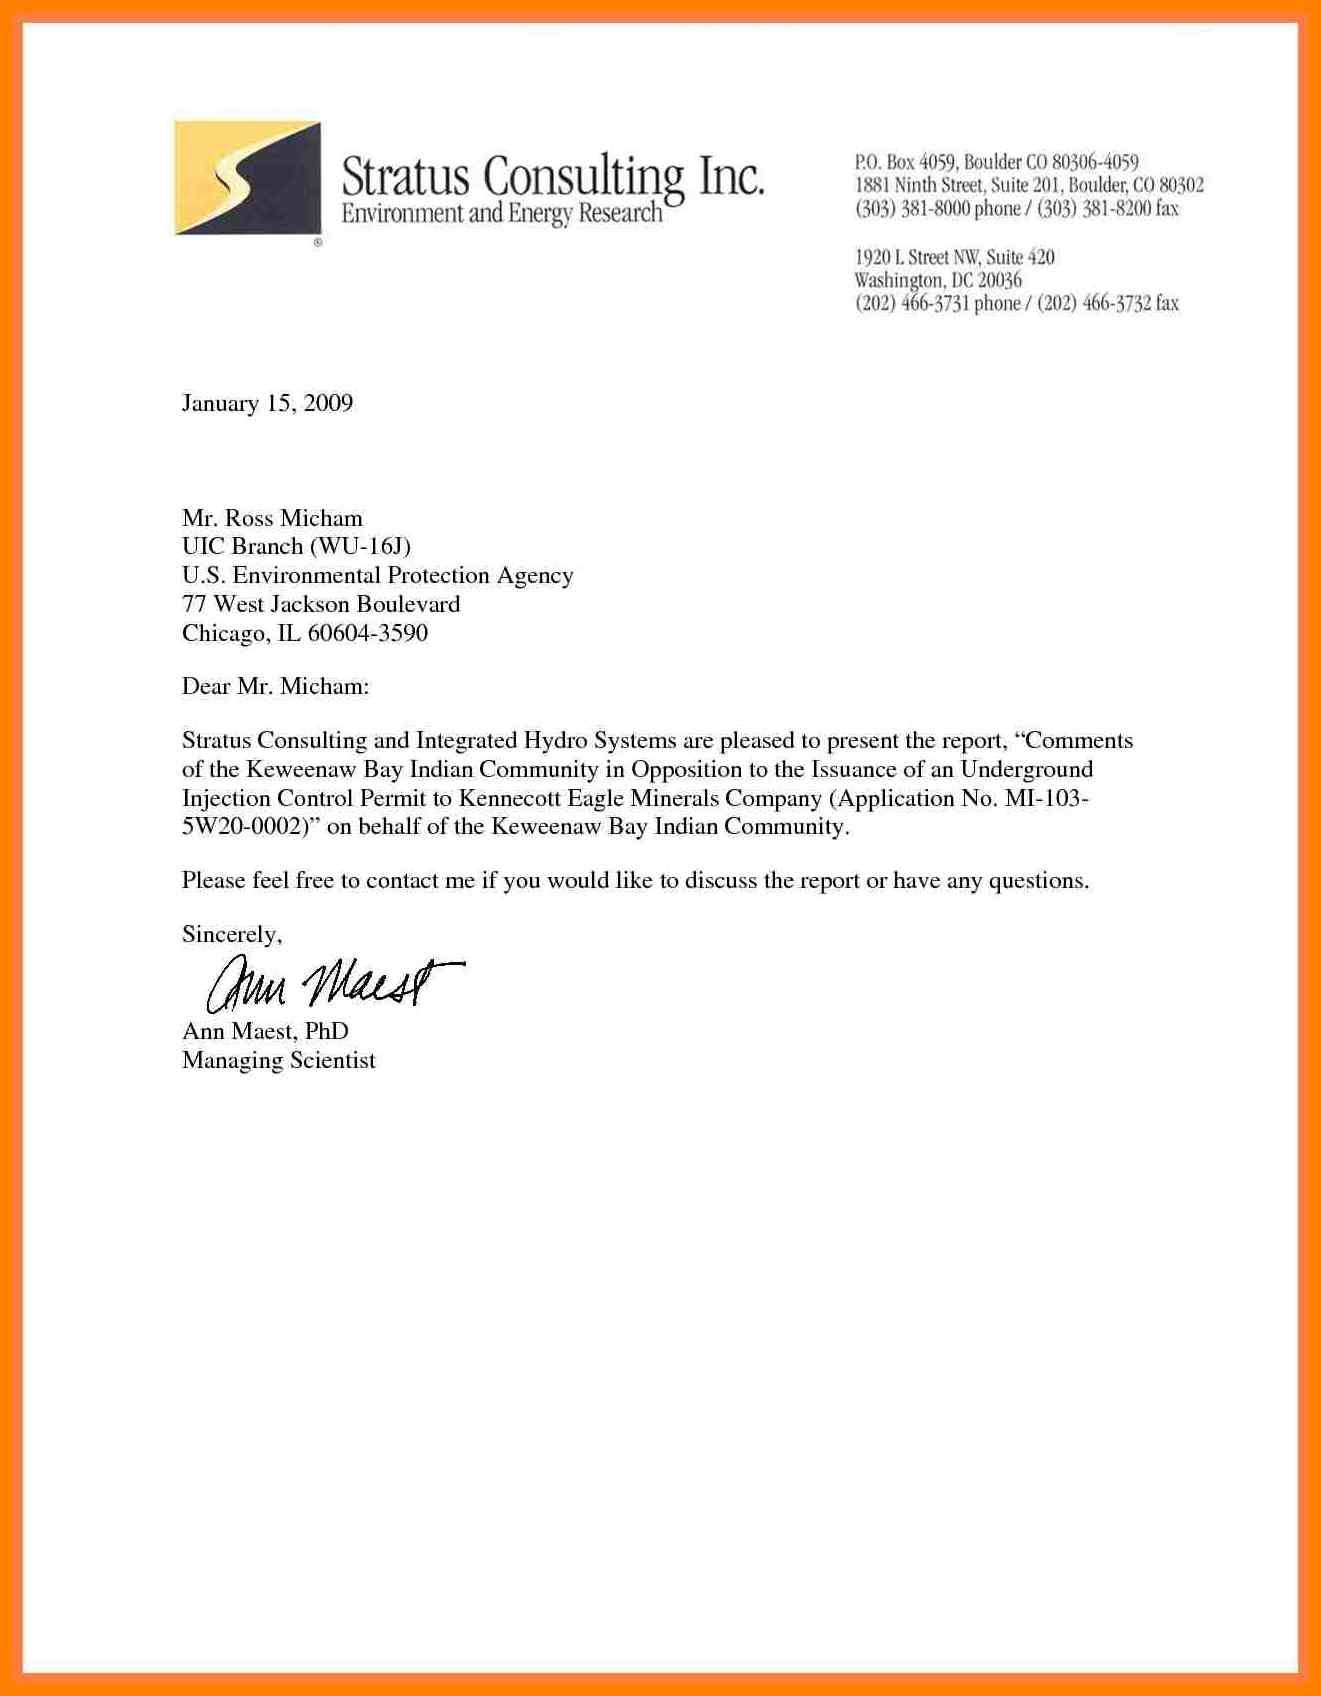 business letterhead format business letterhead examples intoanysearchco by into